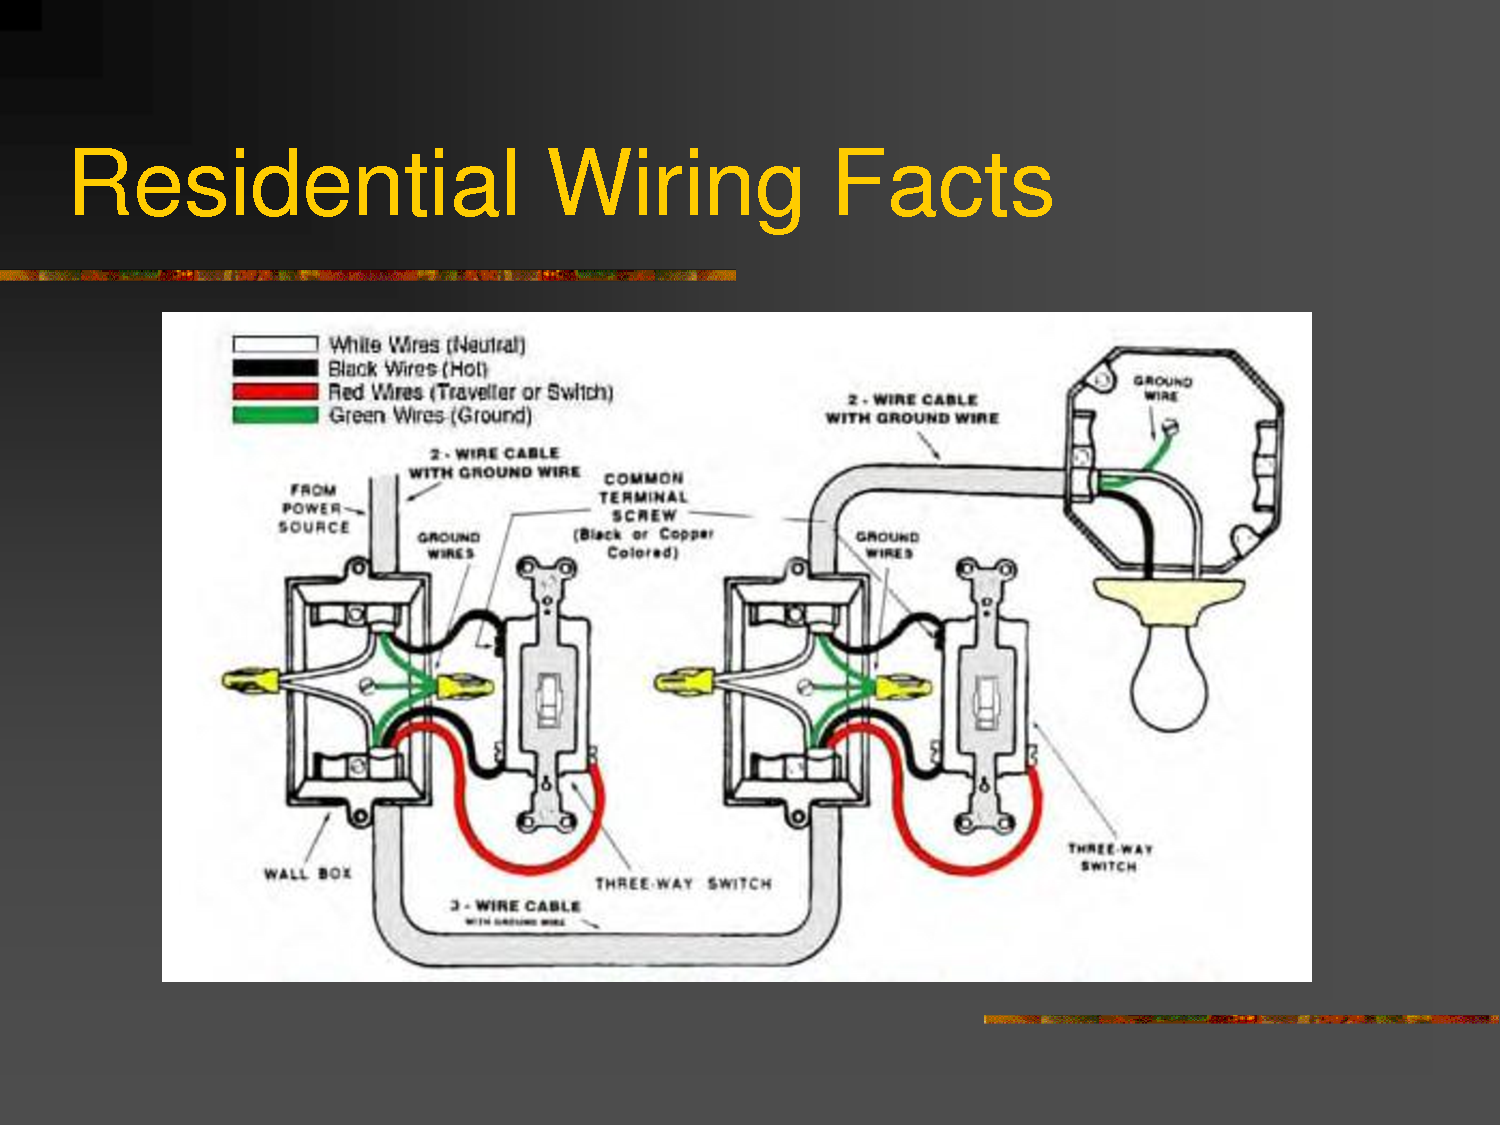 4 best images of residential wiring diagrams house electrical 4 best images of residential wiring diagrams house electrical asfbconference2016 Image collections